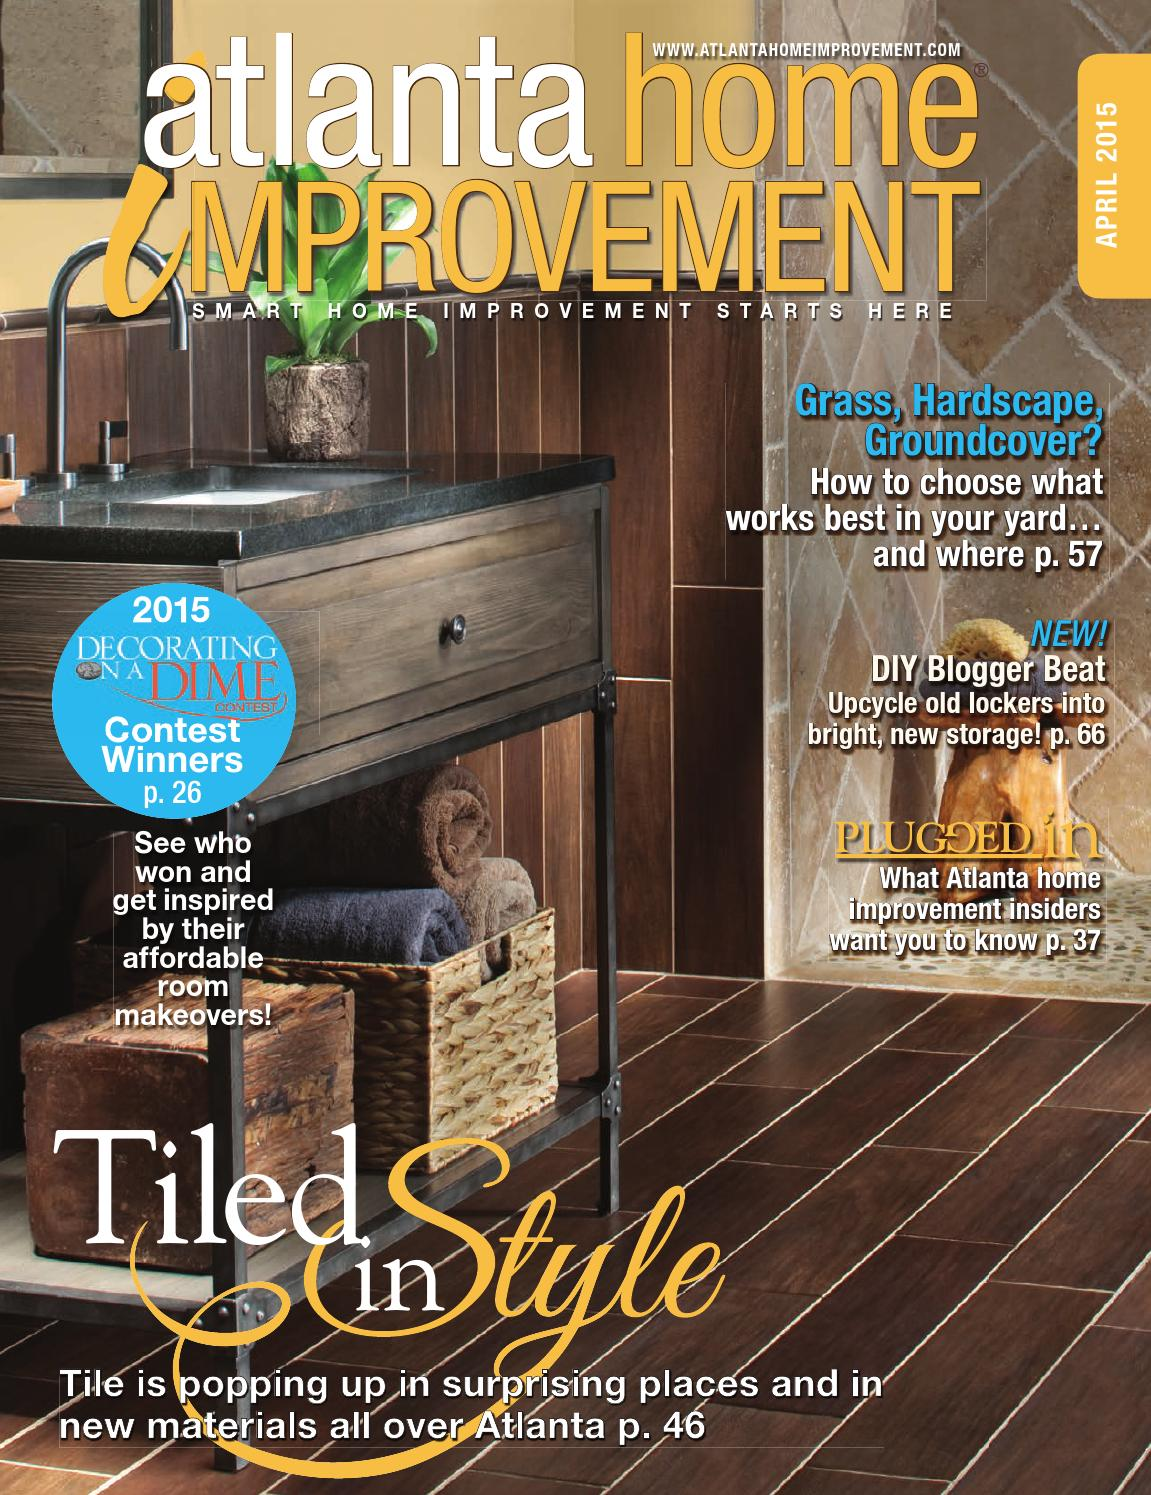 A Place To Call Home By Amy Schisler Reviews Discussion A Place To Call Home Book Atlanta Home Improvement 0415 By My Home Improvement Magazine - Issuu